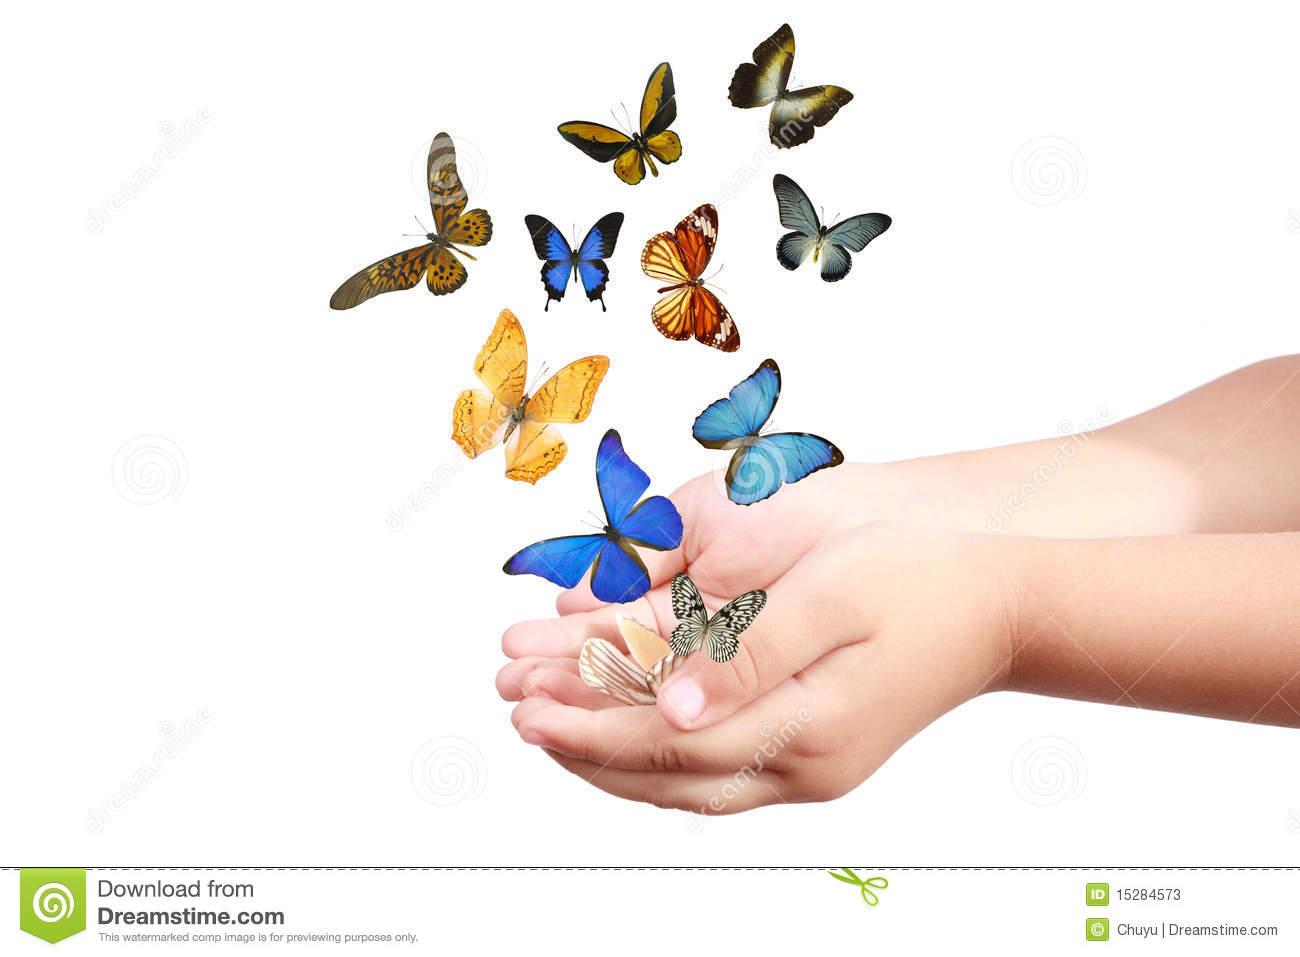 Uncategorized Butterfly Hand childs hand releasing butterflies stock image 15284573 child s butterflies